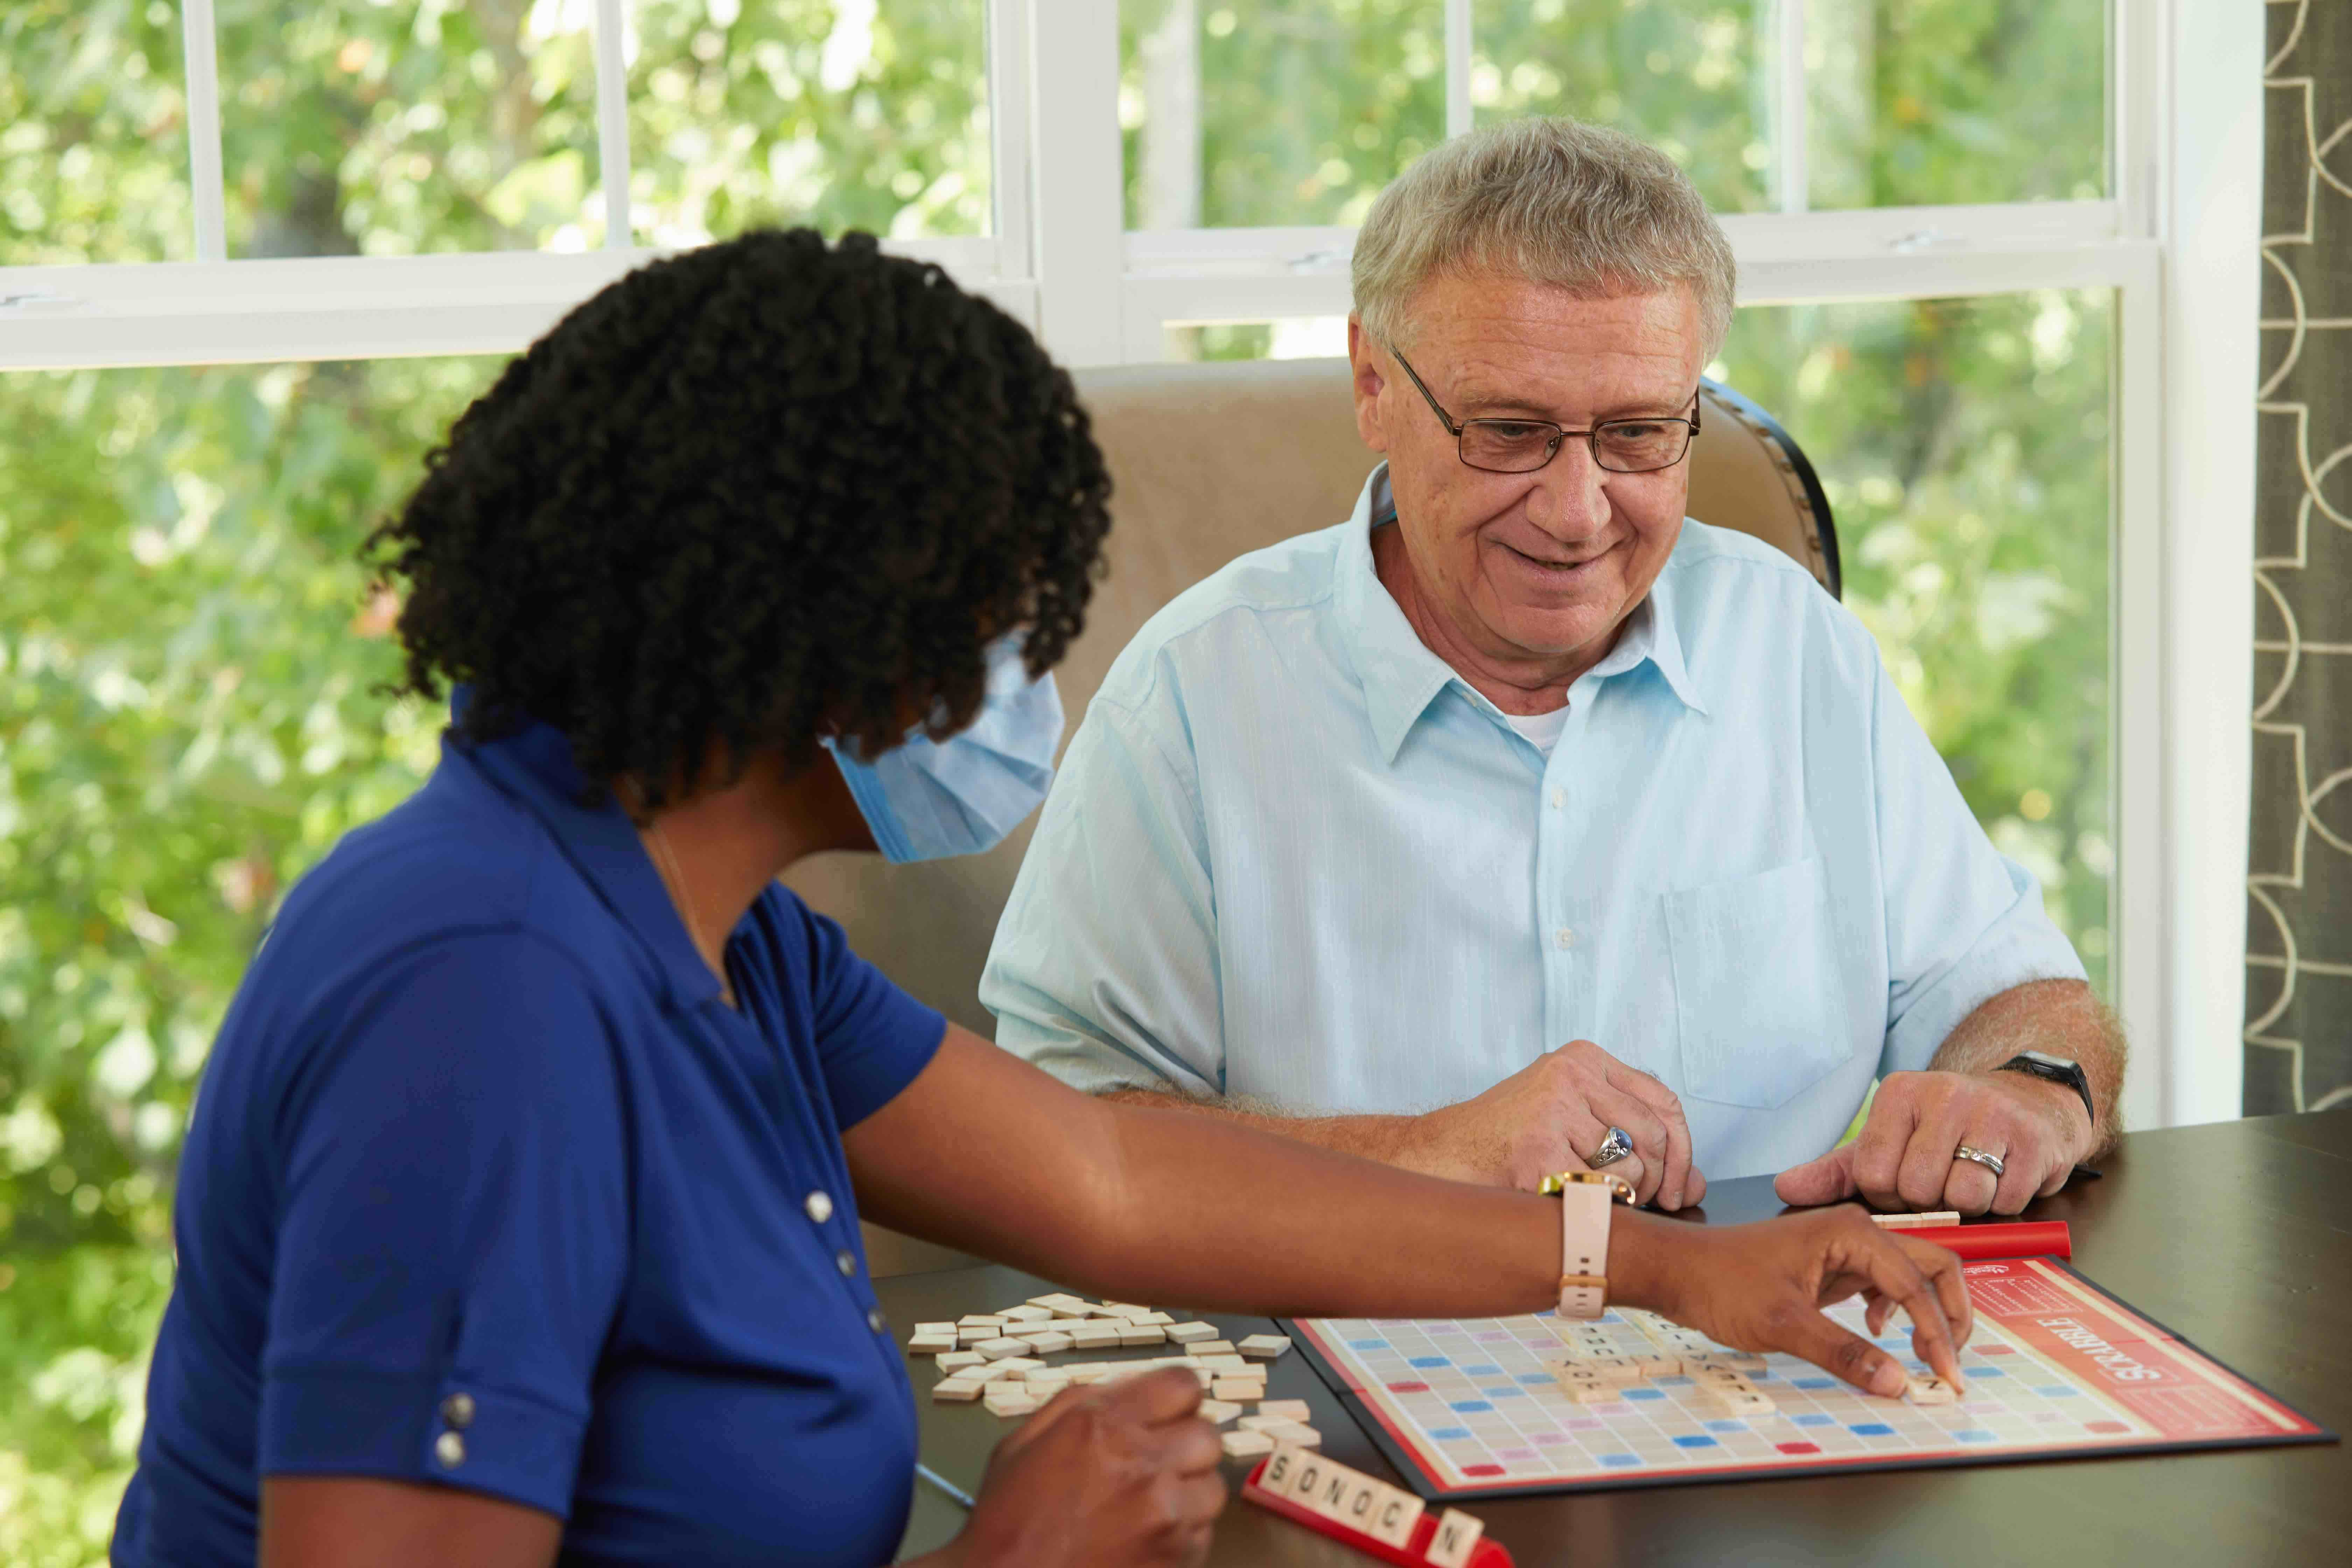 Caregiver Providing Interactive Care to a Senior in Wichita, KS